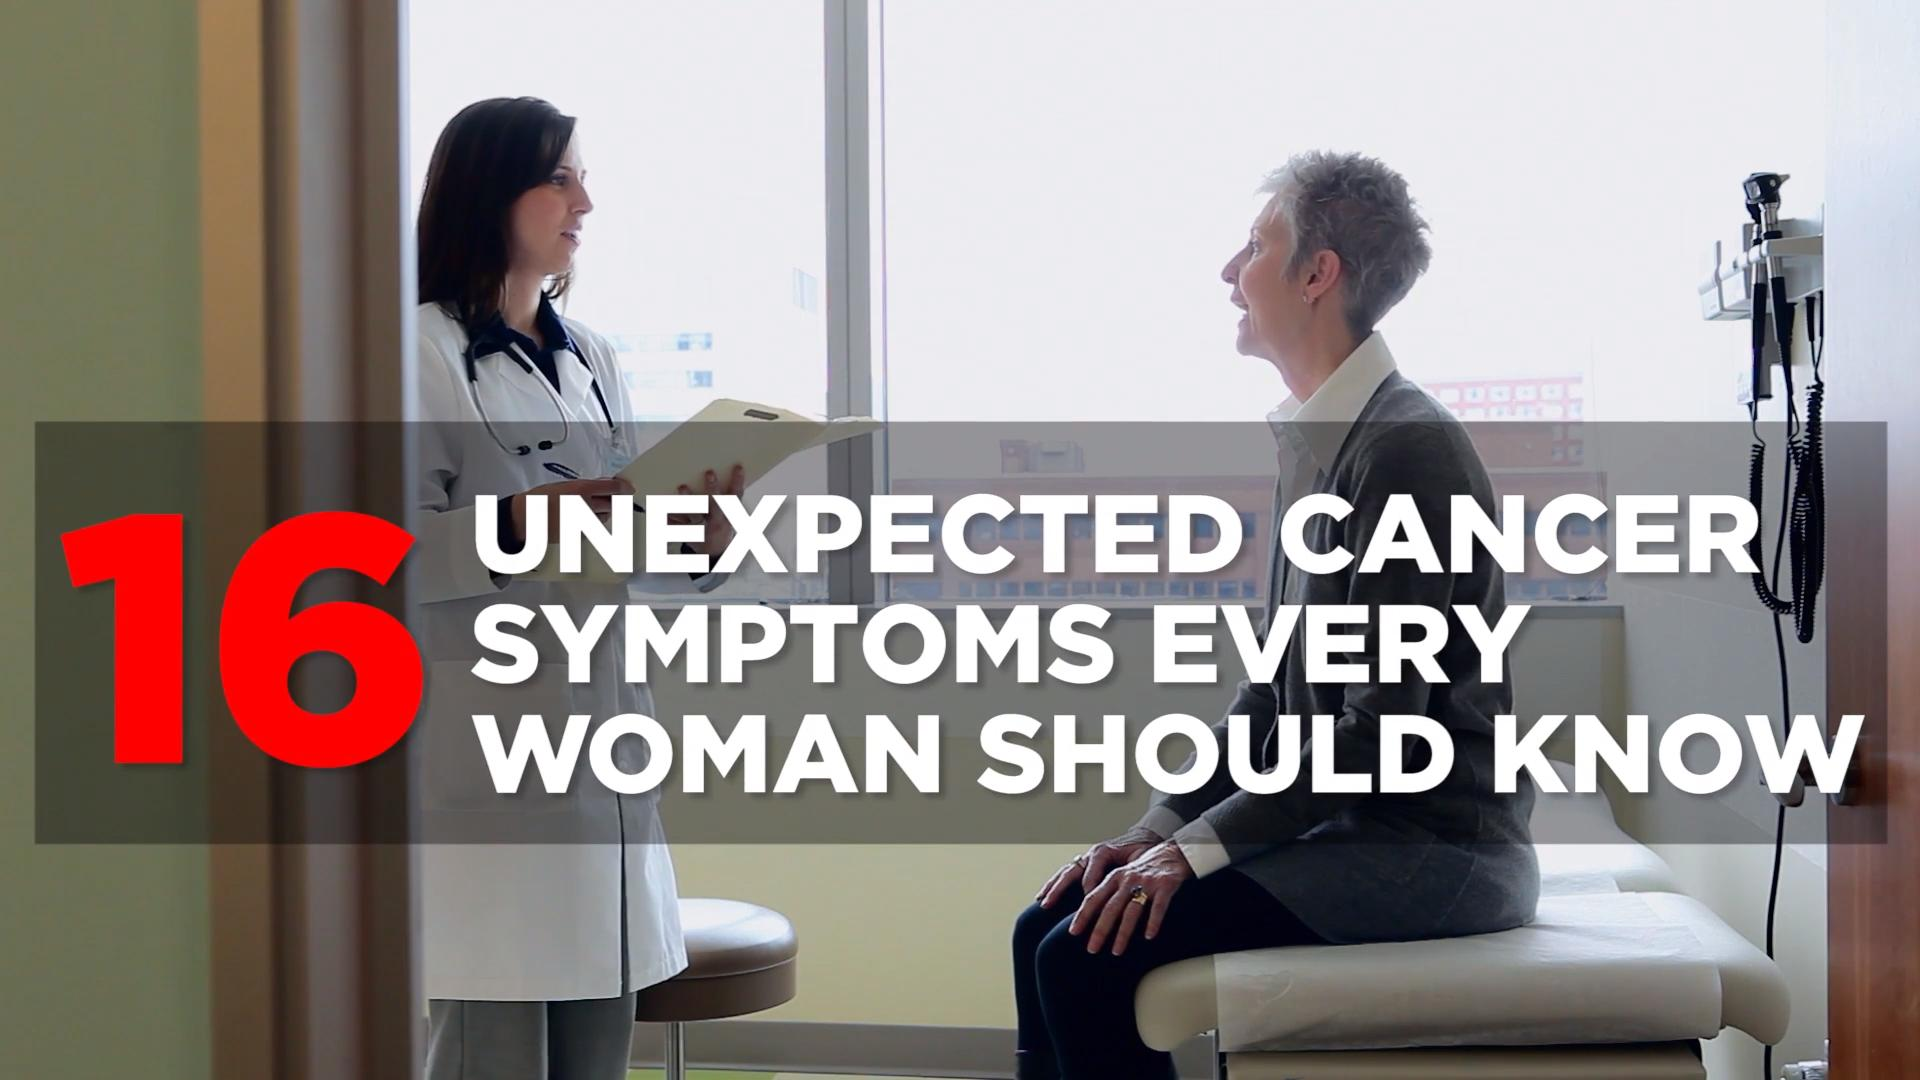 Surprising signs of cancer